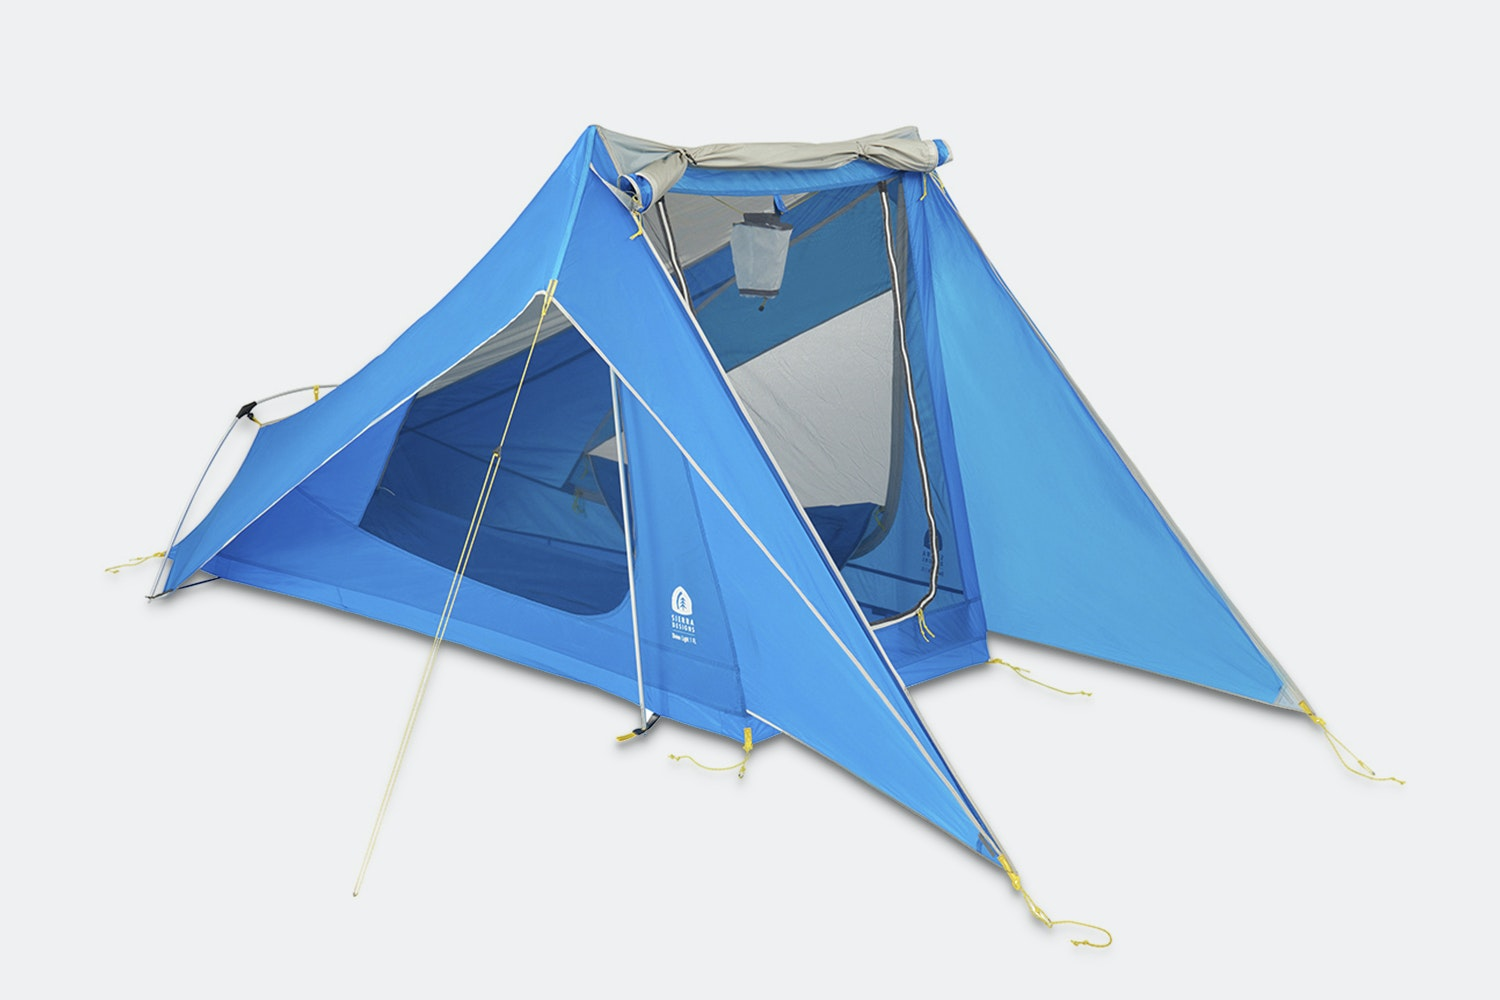 Sierra Designs Divine Light 1FL & 2FL Tents